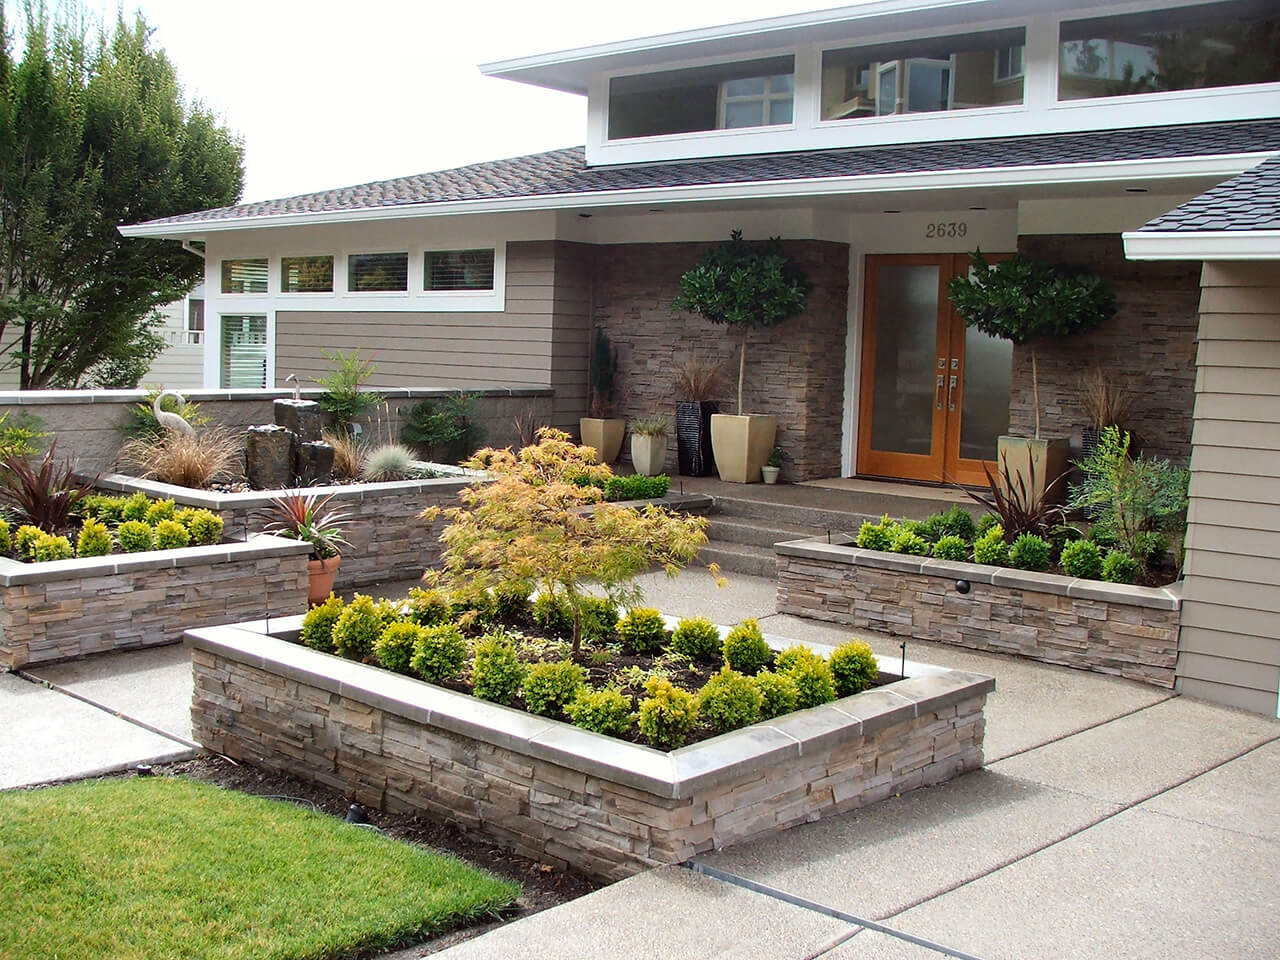 20 brilliant front garden landscaping ideas style motivation ForFront Garden Ideas